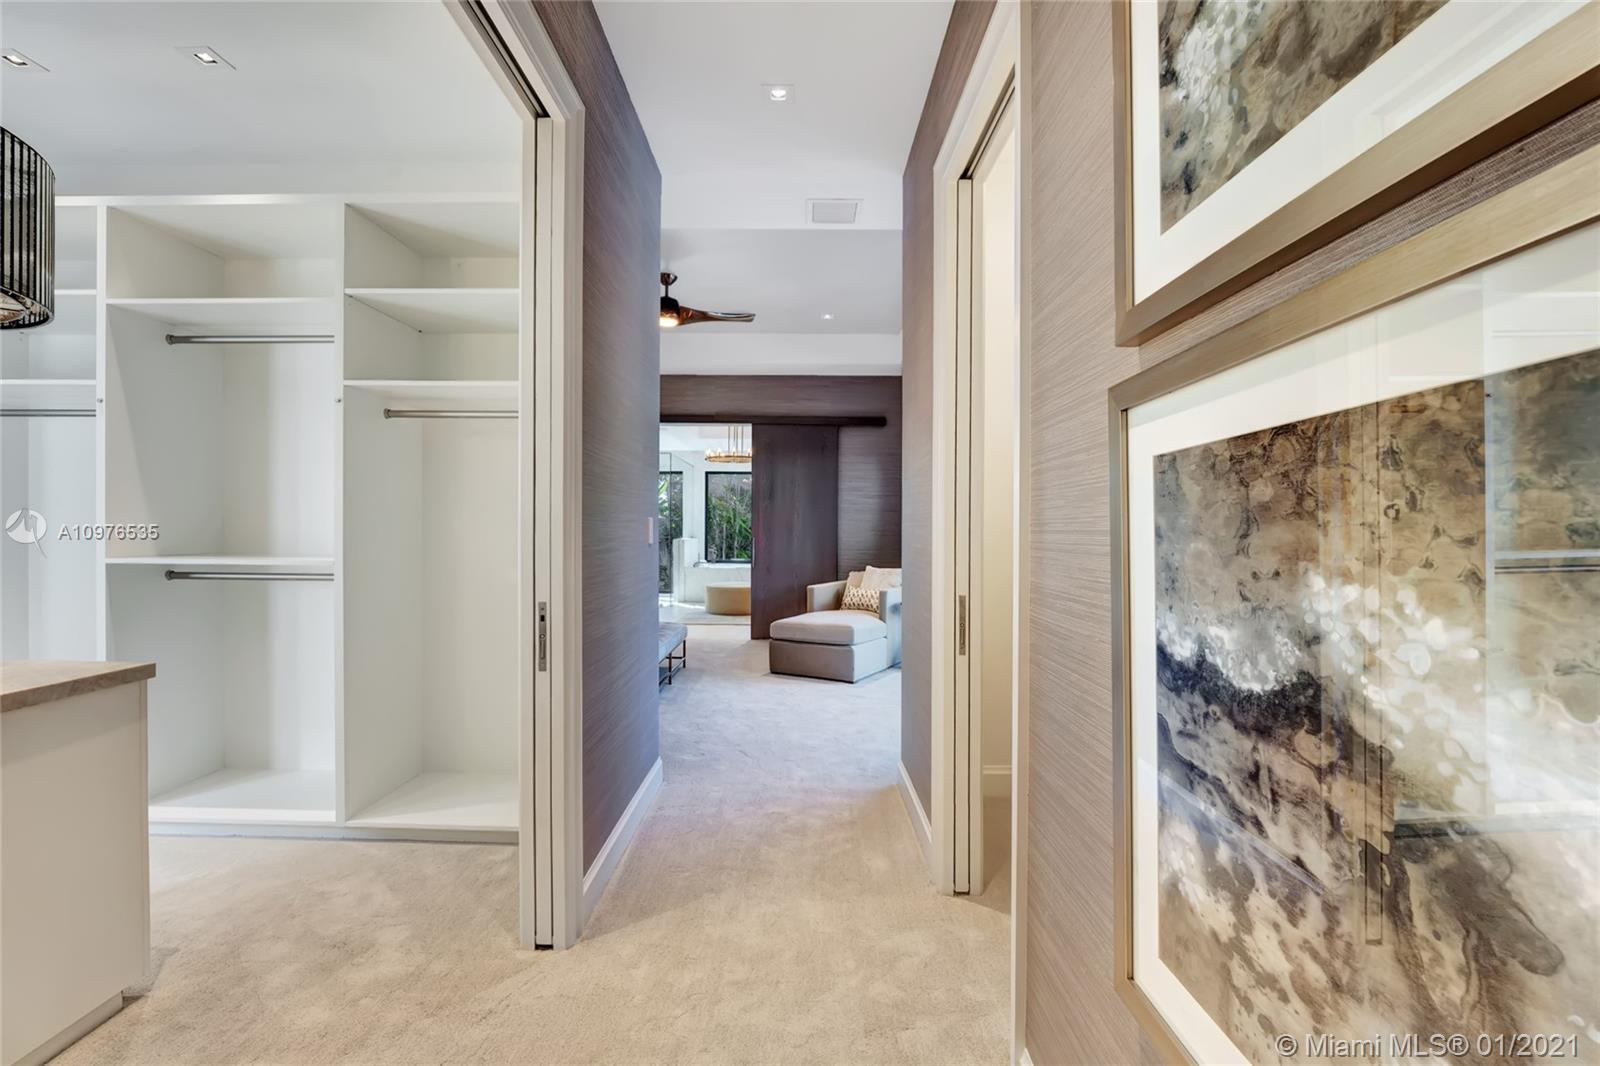 Hallway to the Master Ensuite